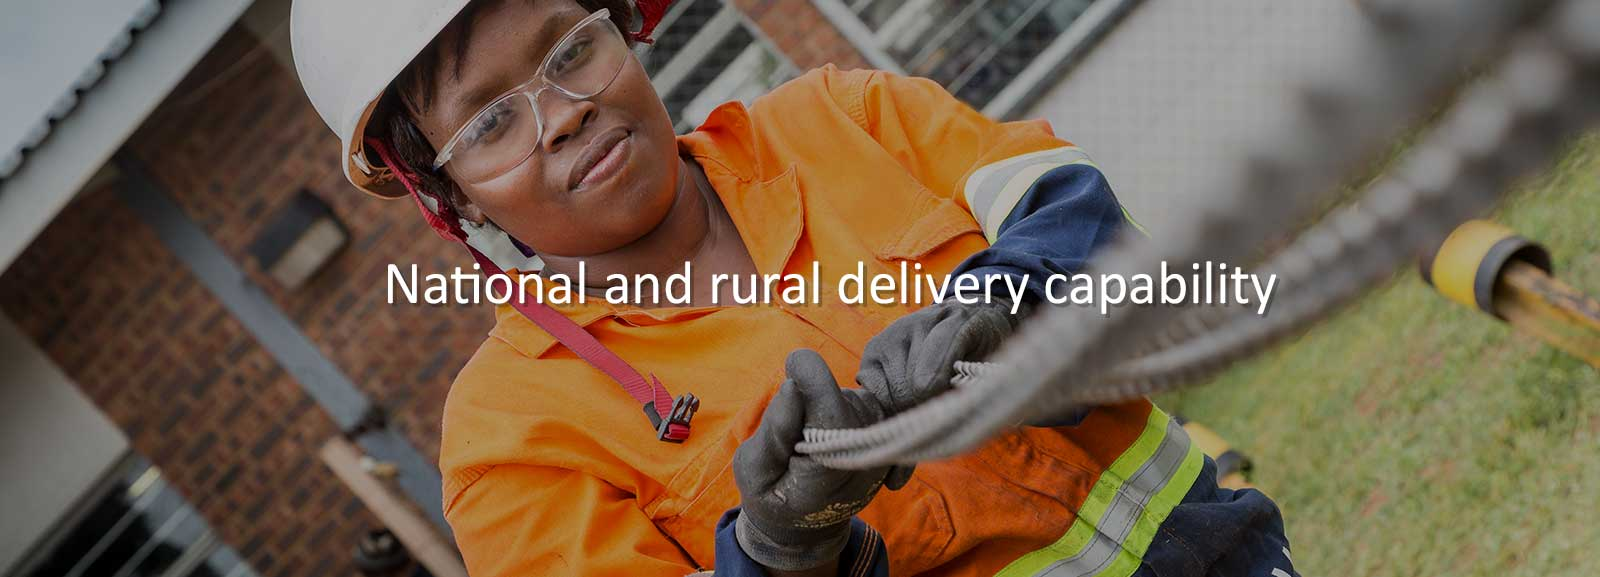 National And Rural Delivery Capability